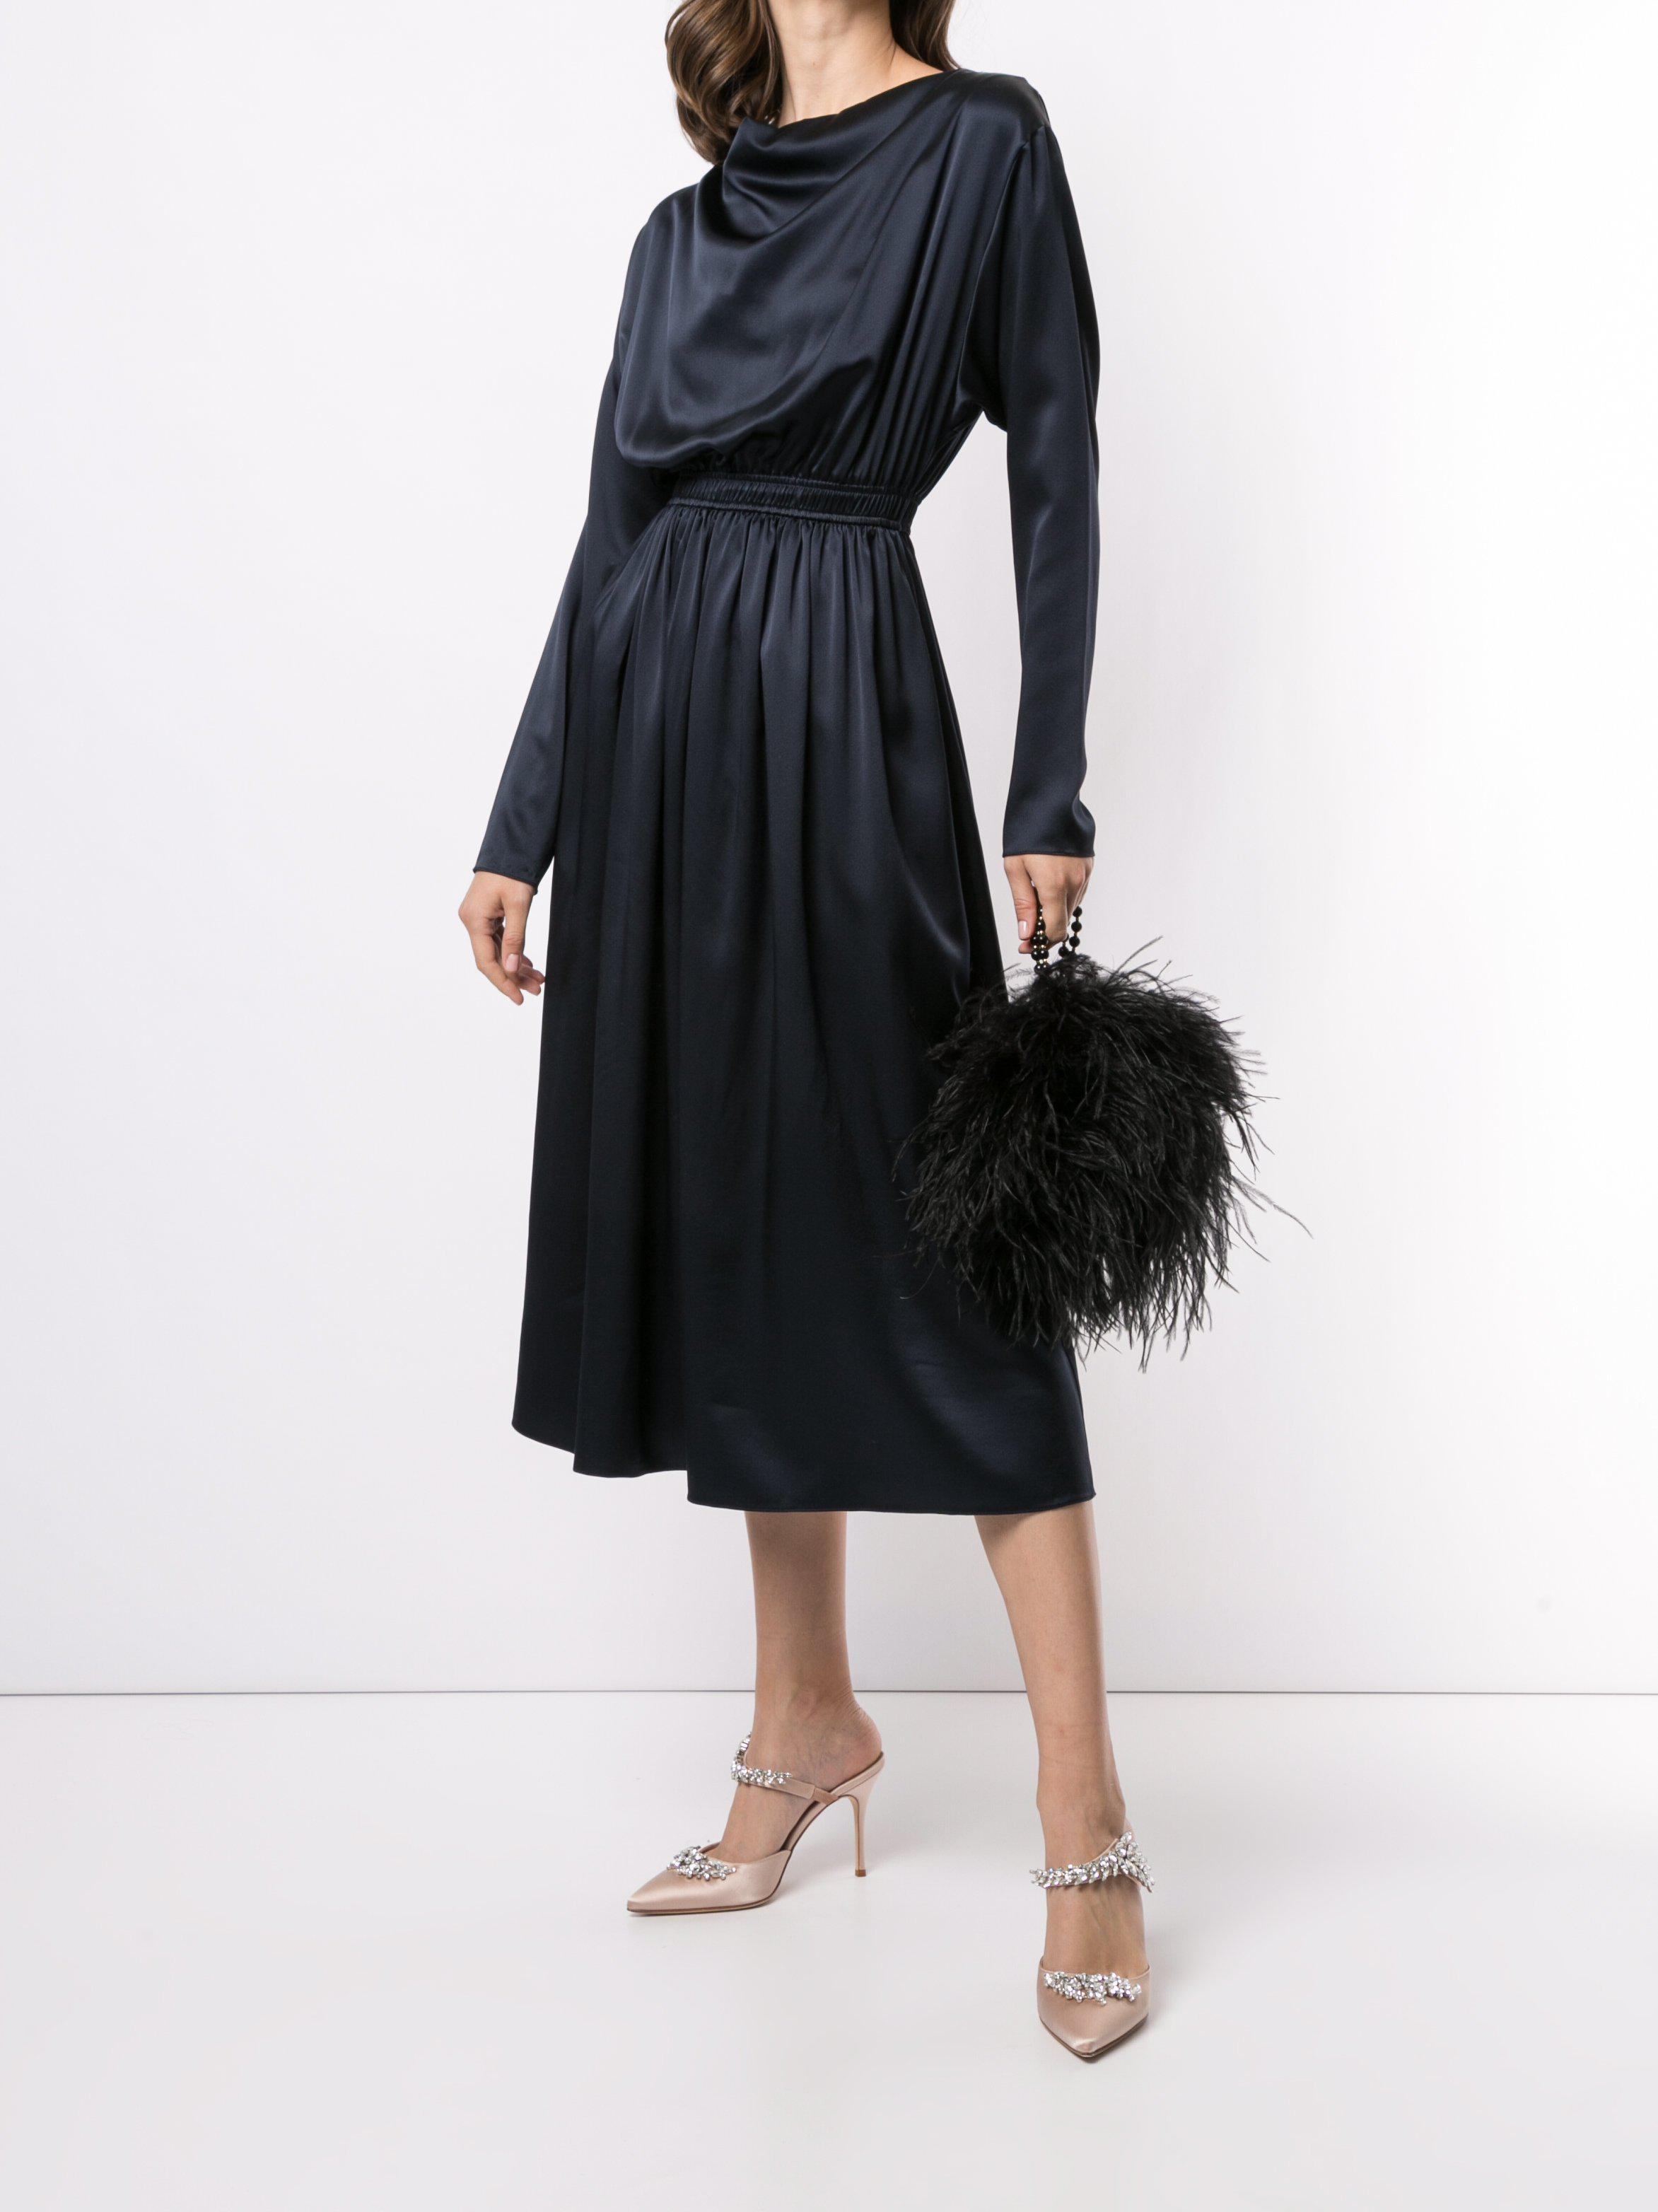 COWL NECK DRESS IN SILK CHARMEUSE 0